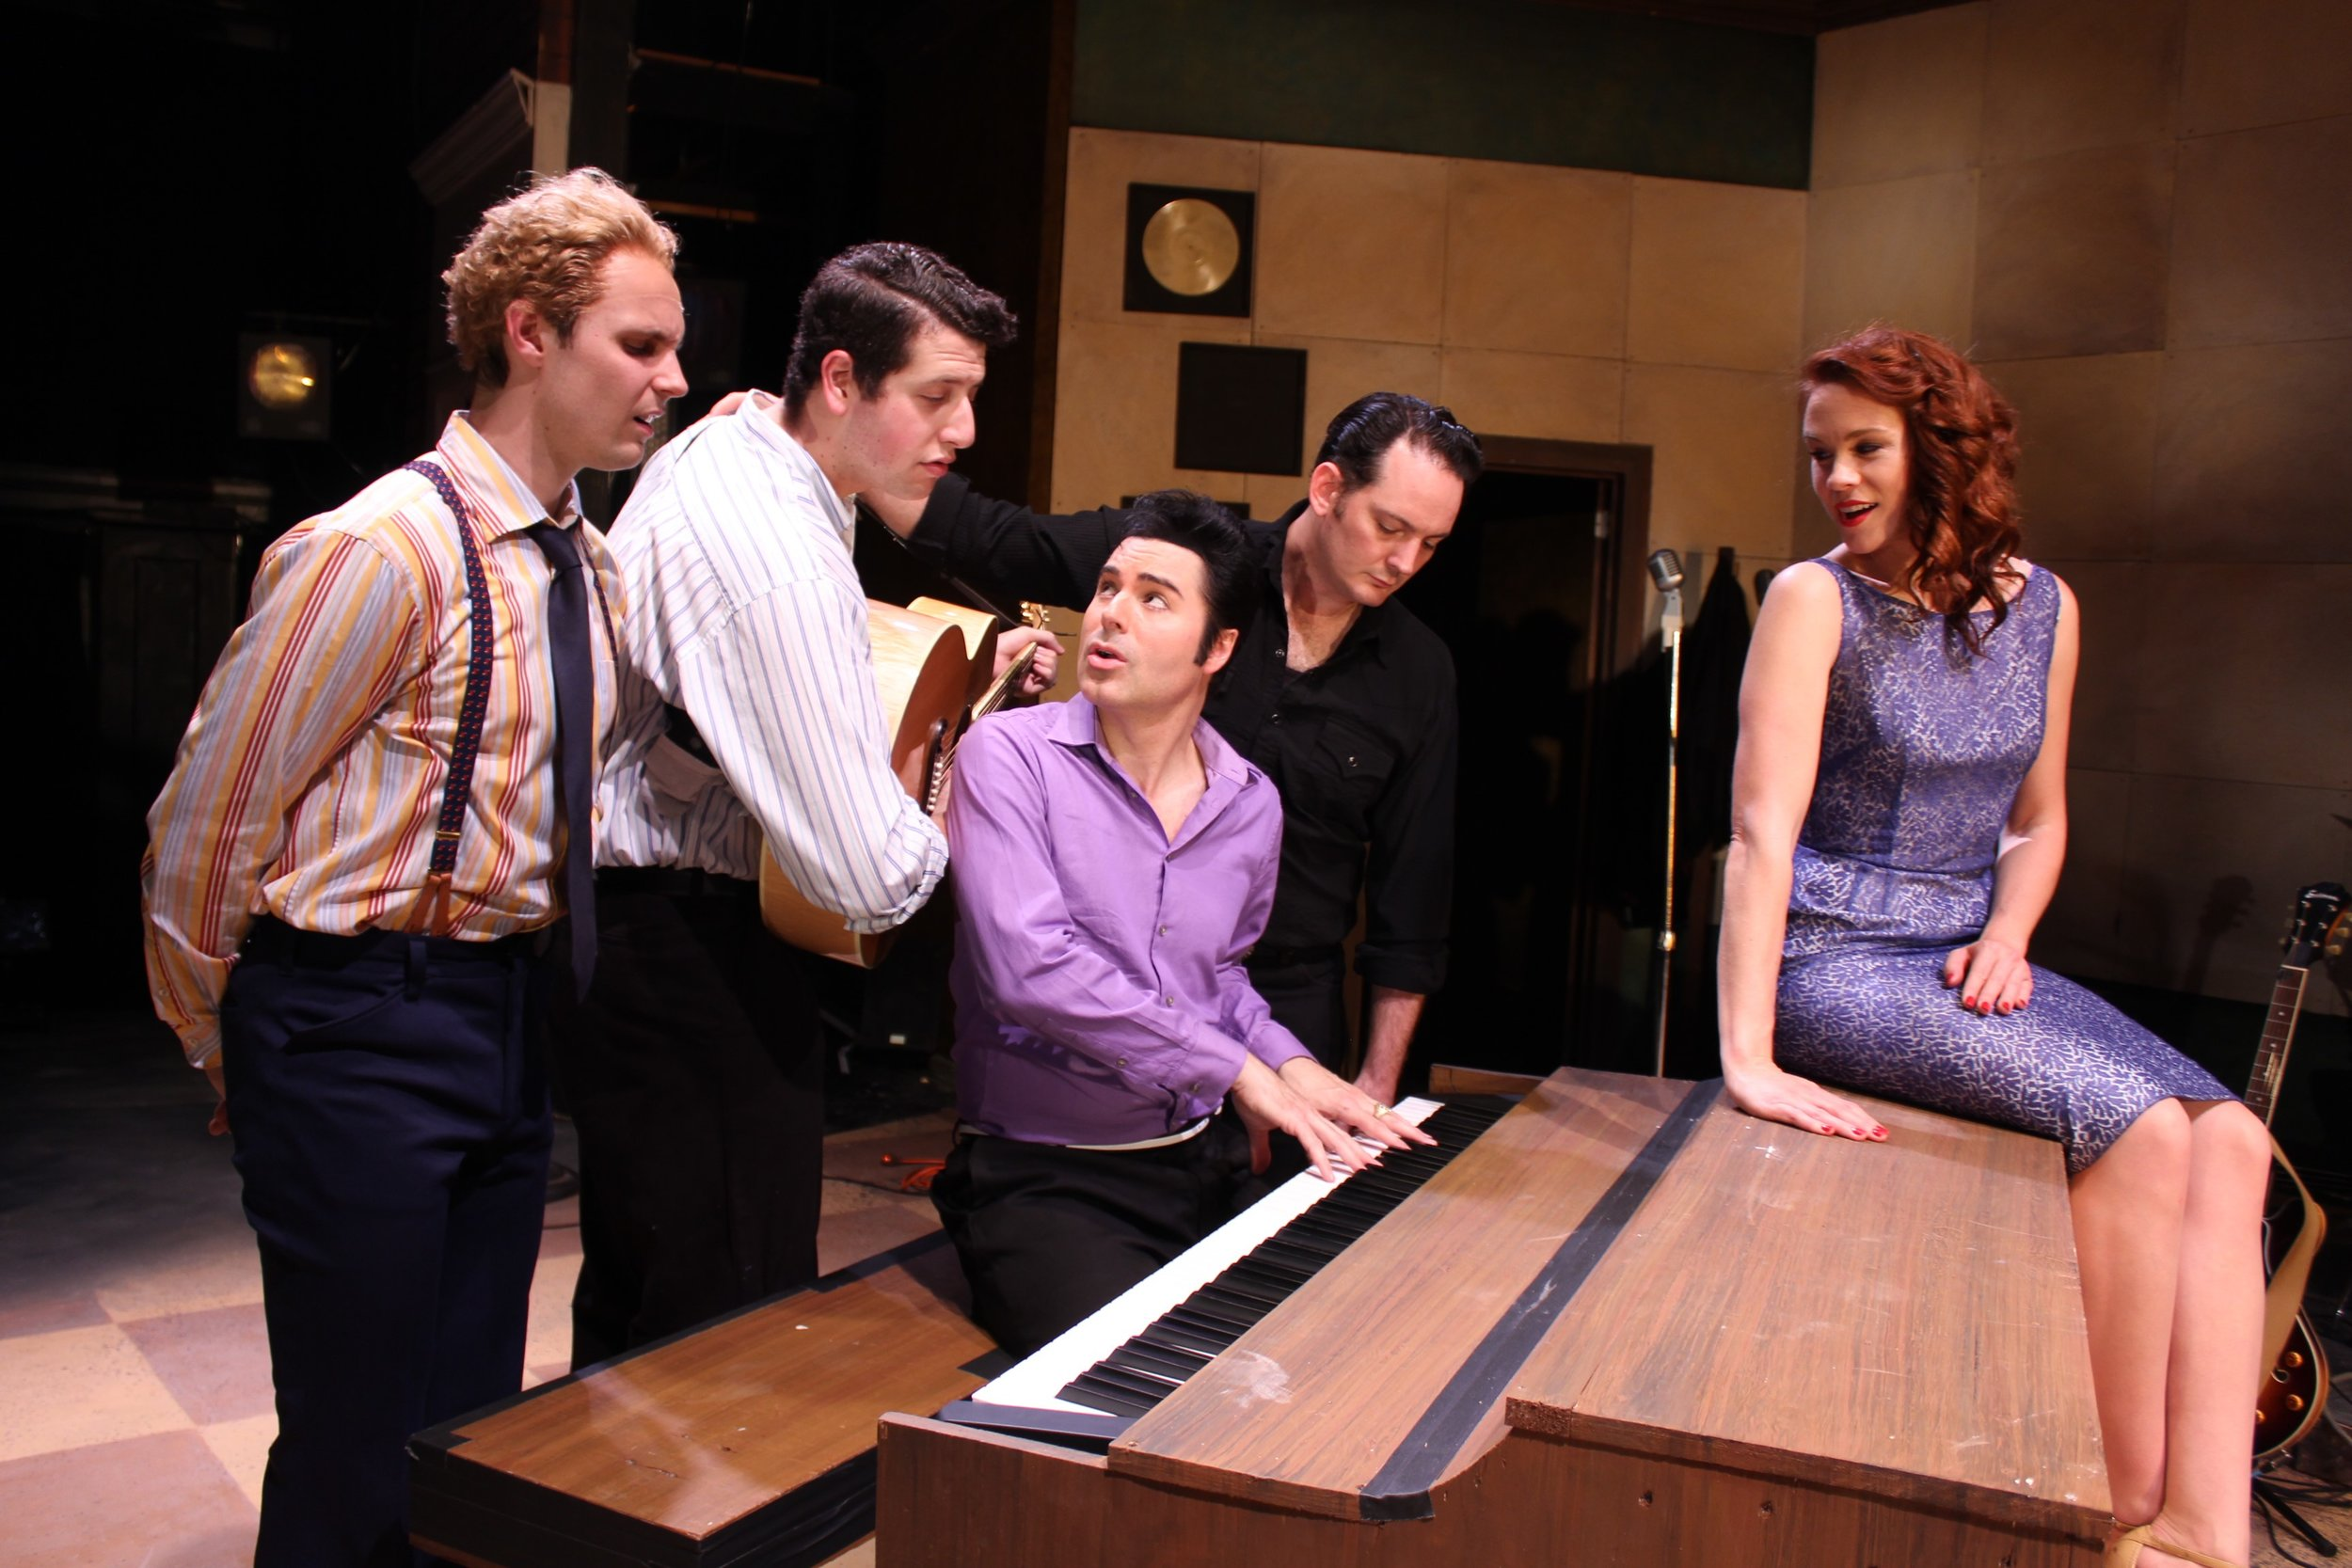 Jerry Lee Lewis (Dominique Scott), Carl Perkins (Jeremy Sevelovitz), Elvis Presley (Cole), Johnny Cash (Sky Seals), Dyanne (Teresa Danskey)